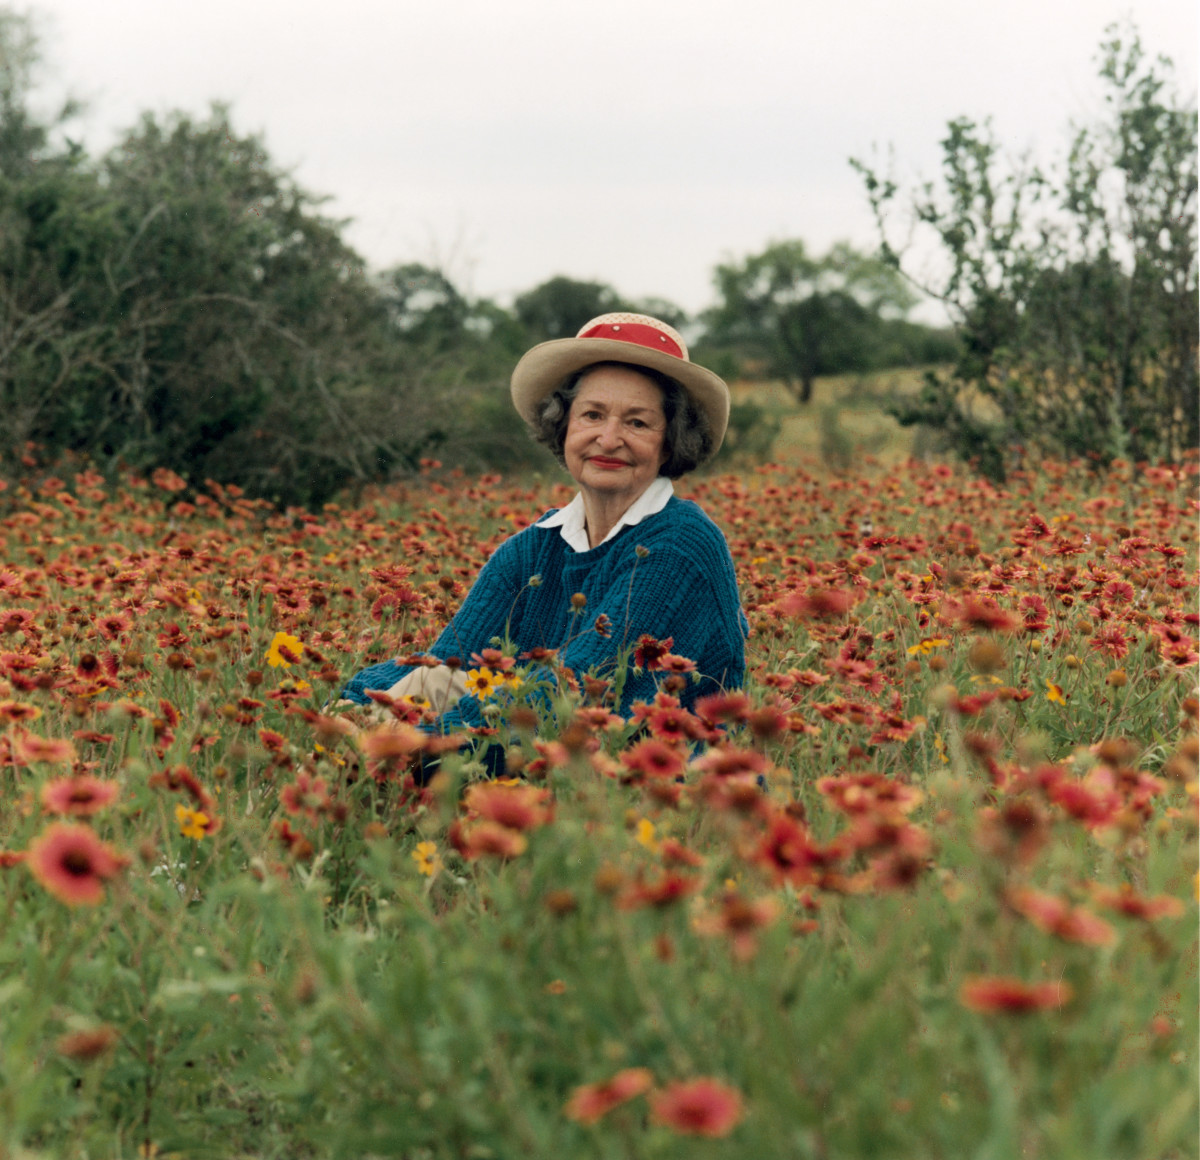 "Lady Bird Johnson: In 1982, Lady Bird Johnson founded the Lady Bird Wildflower Center in Texas to preserve and promote the beauty of the land. She once said: ""My heart found its home long ago in the beauty, mystery, order and disorder of the flowering earth."" (Photo by Education Images/UIG via Getty Images"